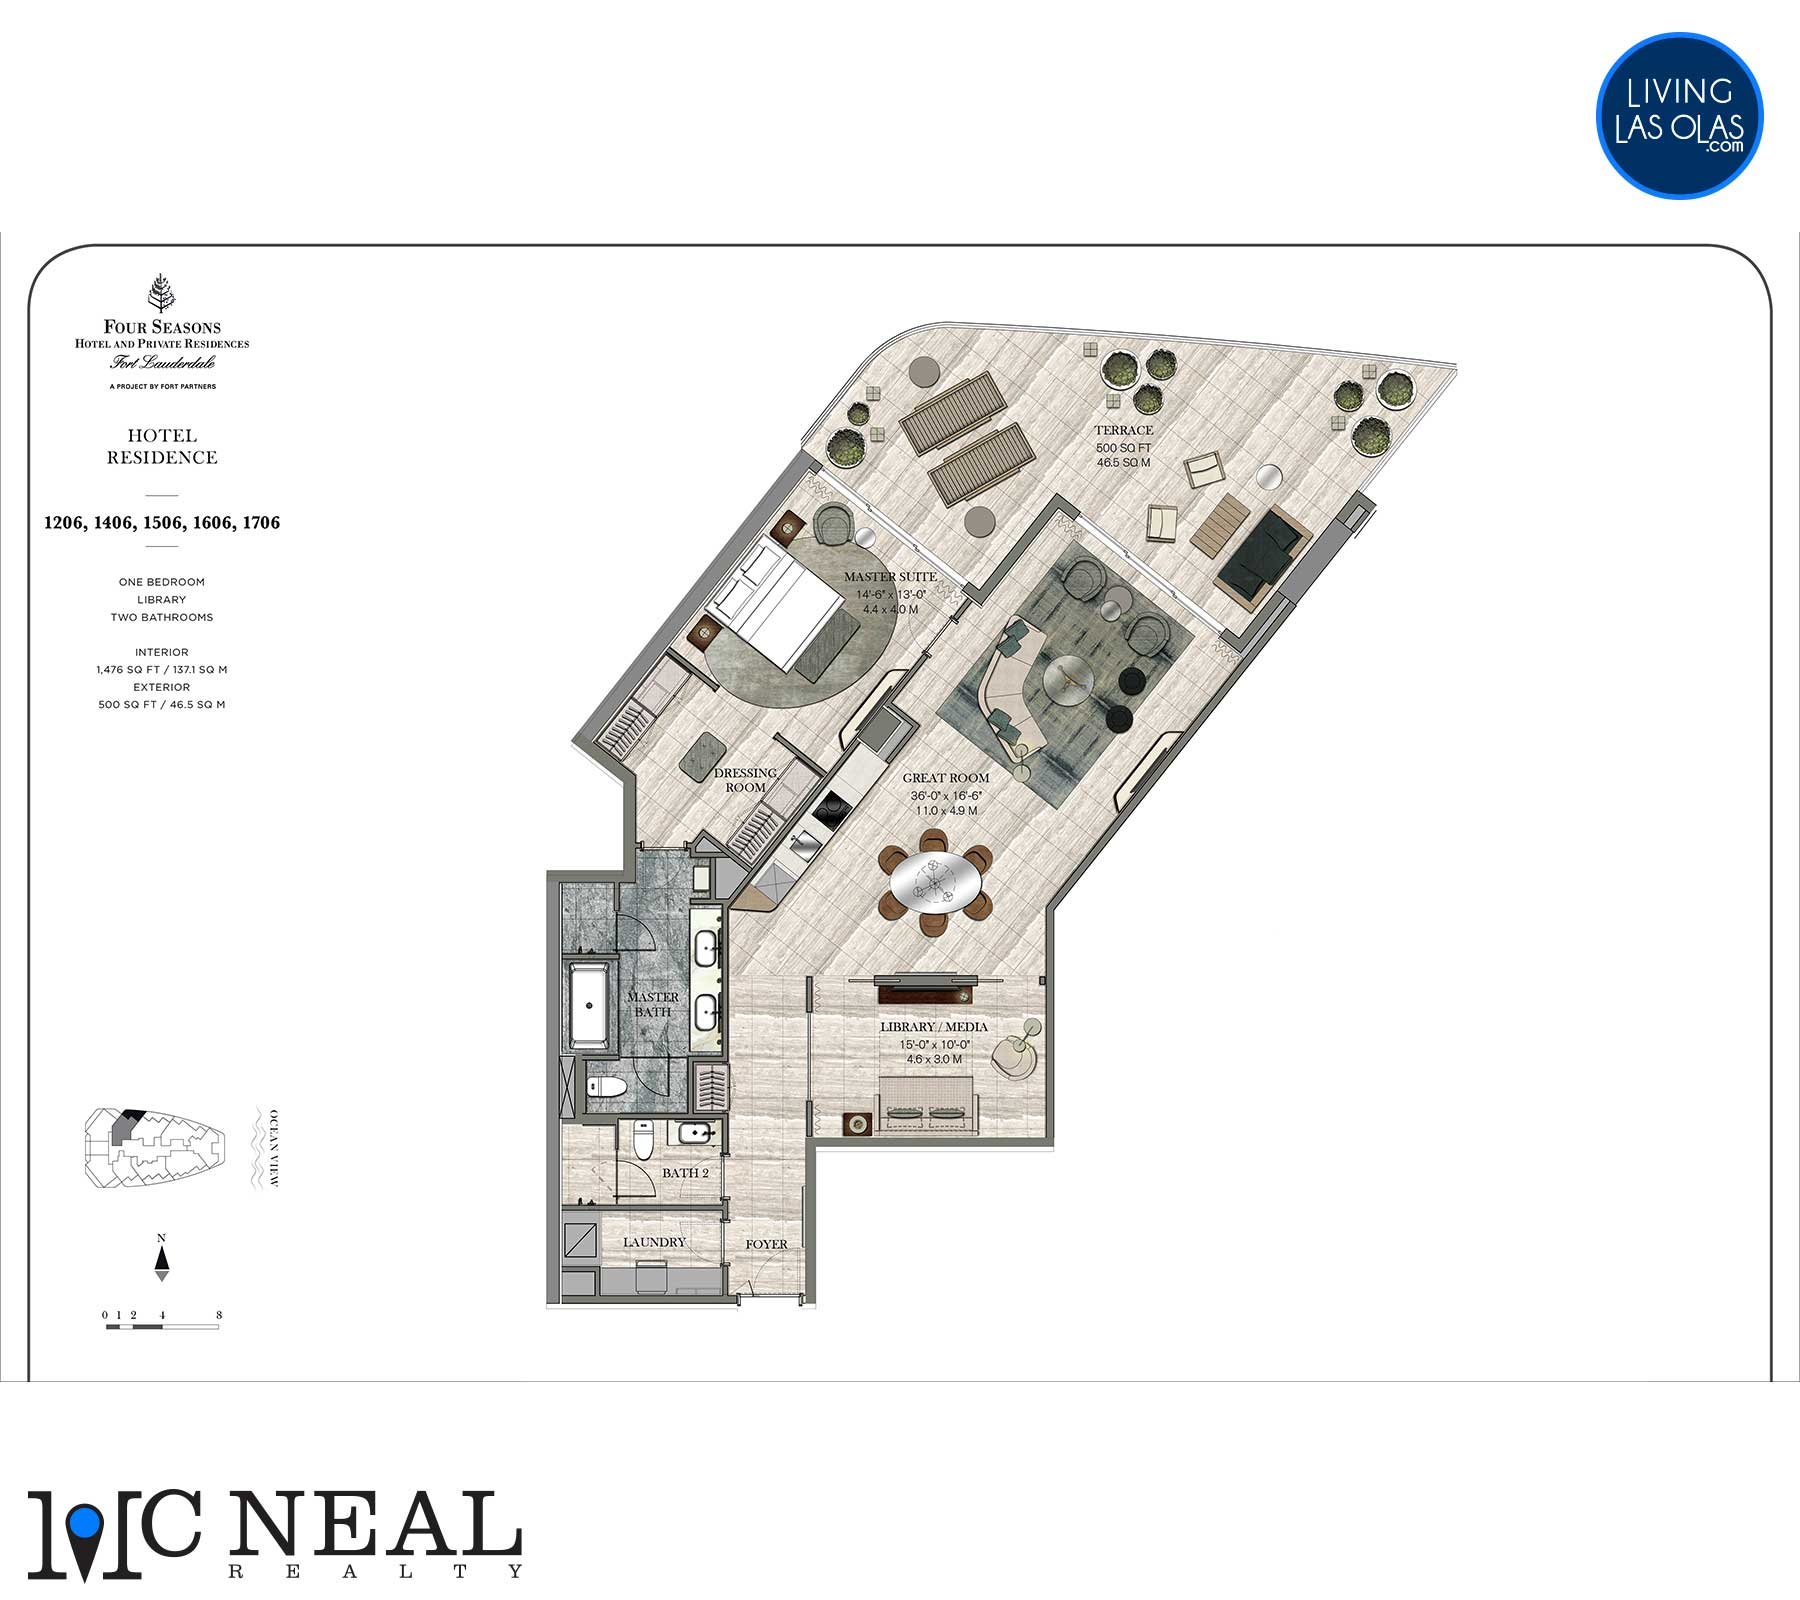 Four Seasons Hotel Residences Floor Plan 1206-1706